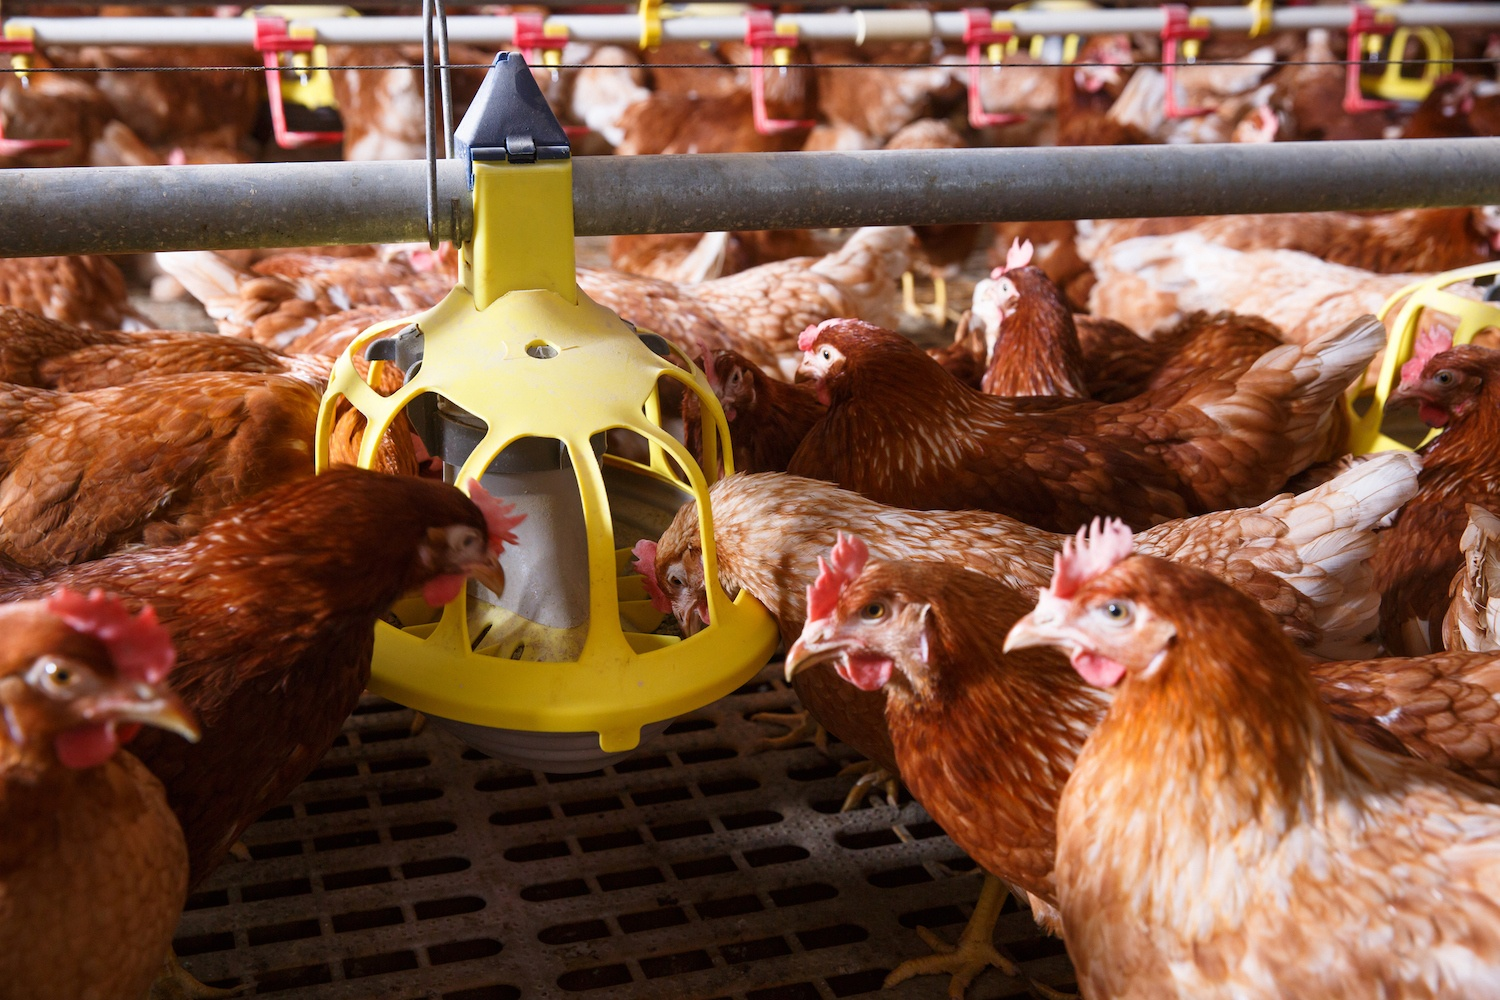 Brown farm chicken in a barn, eating from an automatic feeder. September 2021